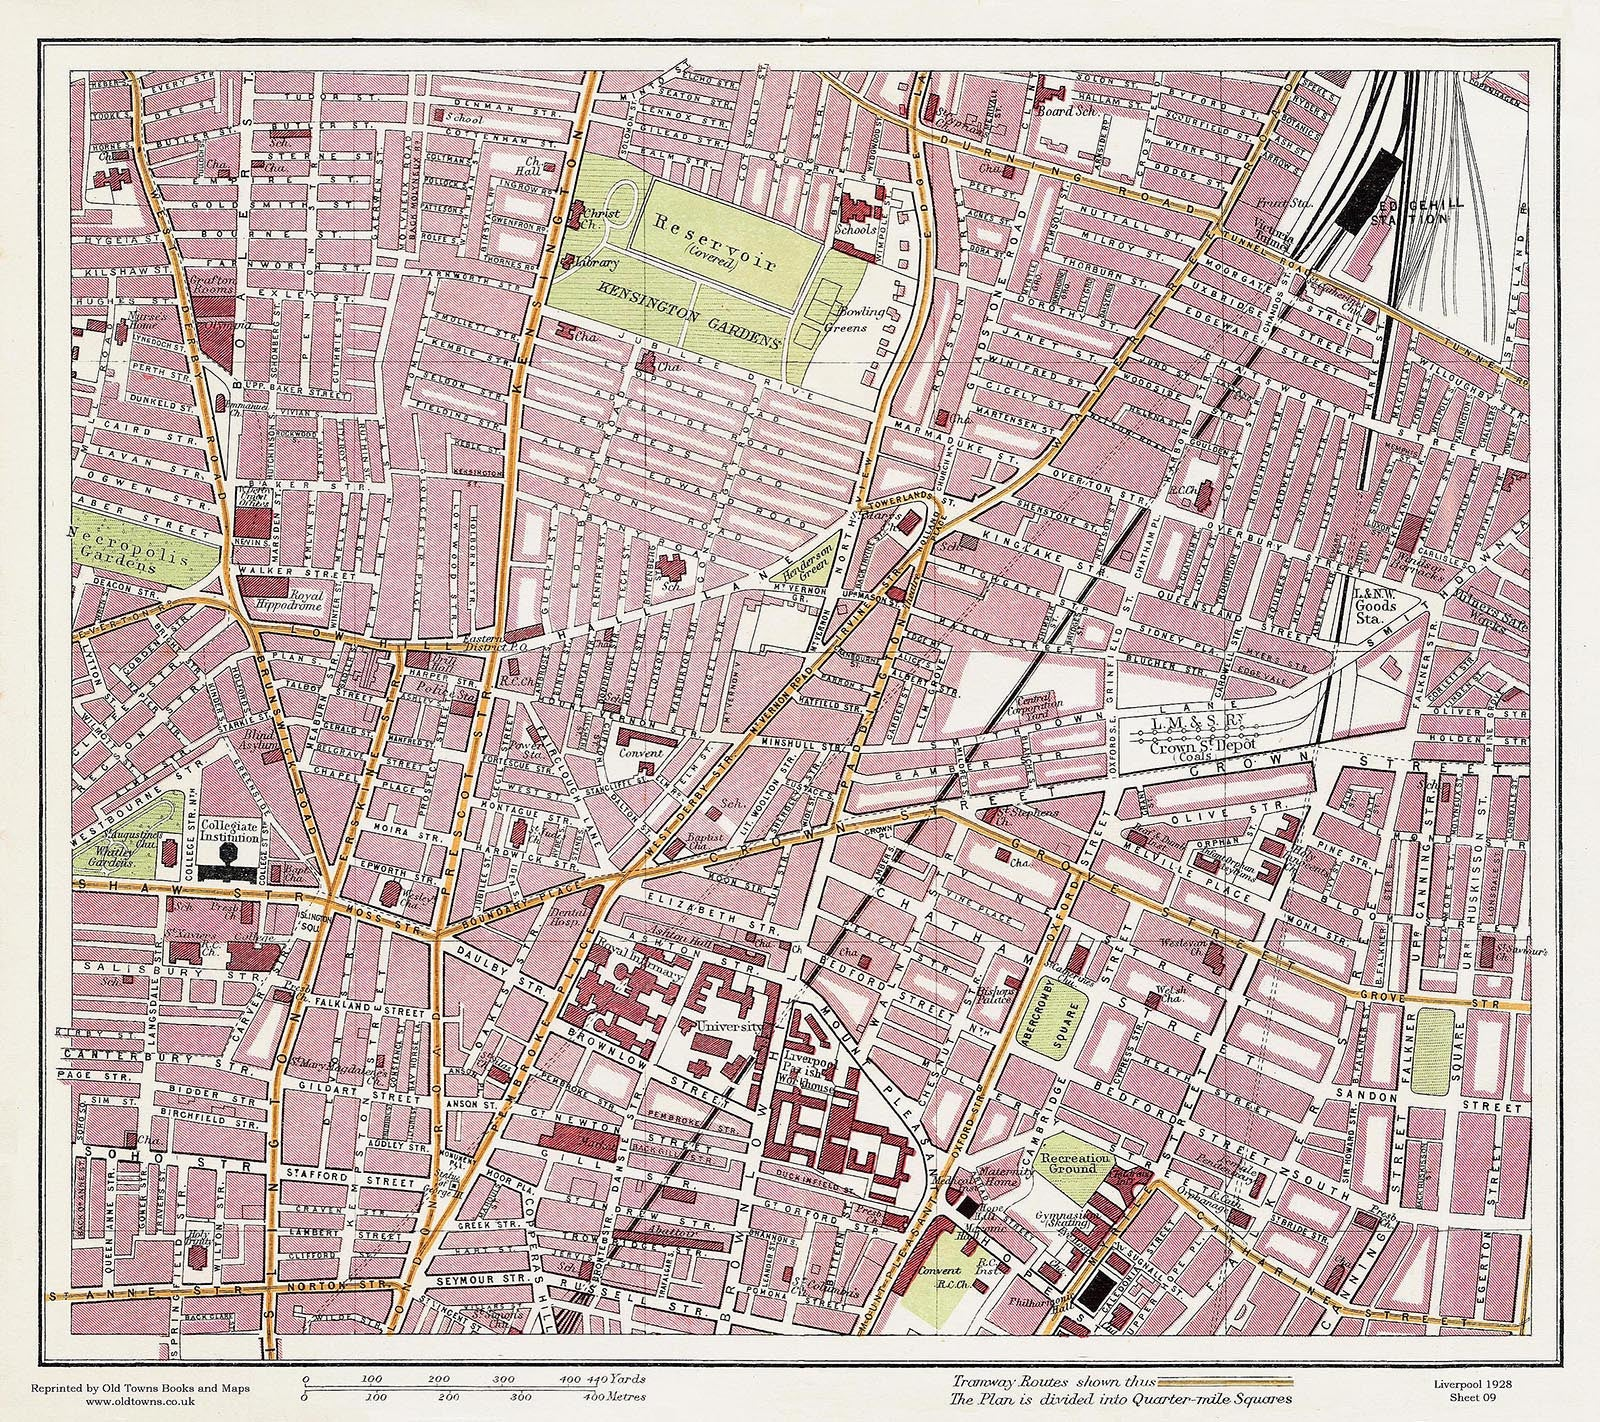 Crown Street area (Liverpool 1928 Sheet 9) on marylebone map, liverpool england central map, borough map, paddington station map, russell square map, bangkok airport map, leadenhall market map, covent garden map, grosvenor square map, camden town map, east india map, west end map, tower hill map,